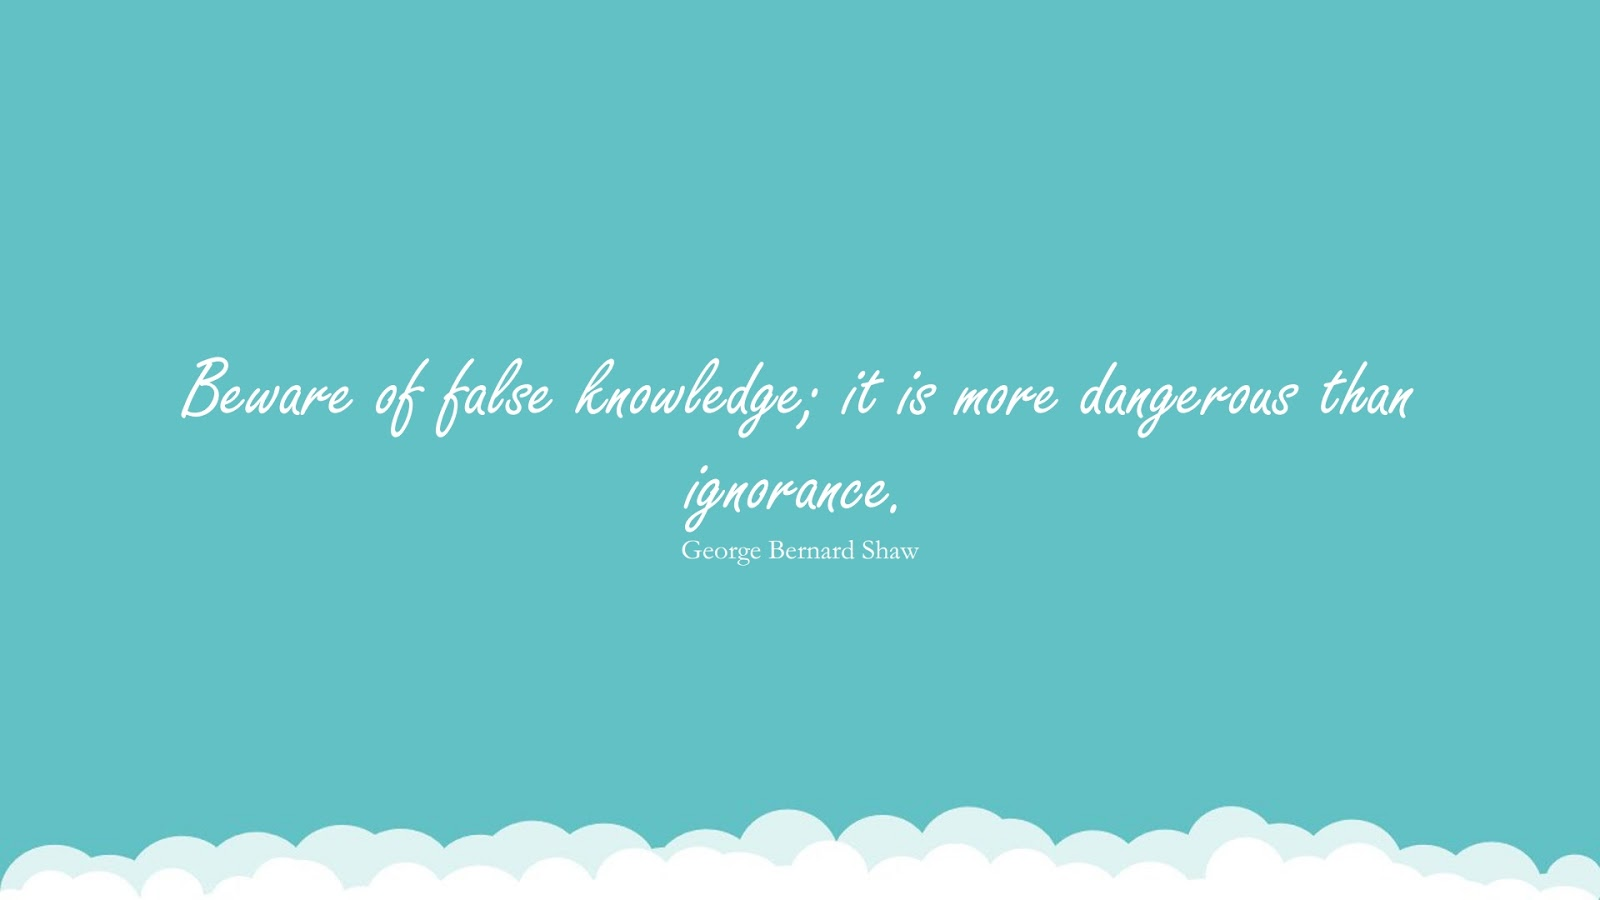 Beware of false knowledge; it is more dangerous than ignorance. (George Bernard Shaw);  #KnowledgeQuotes